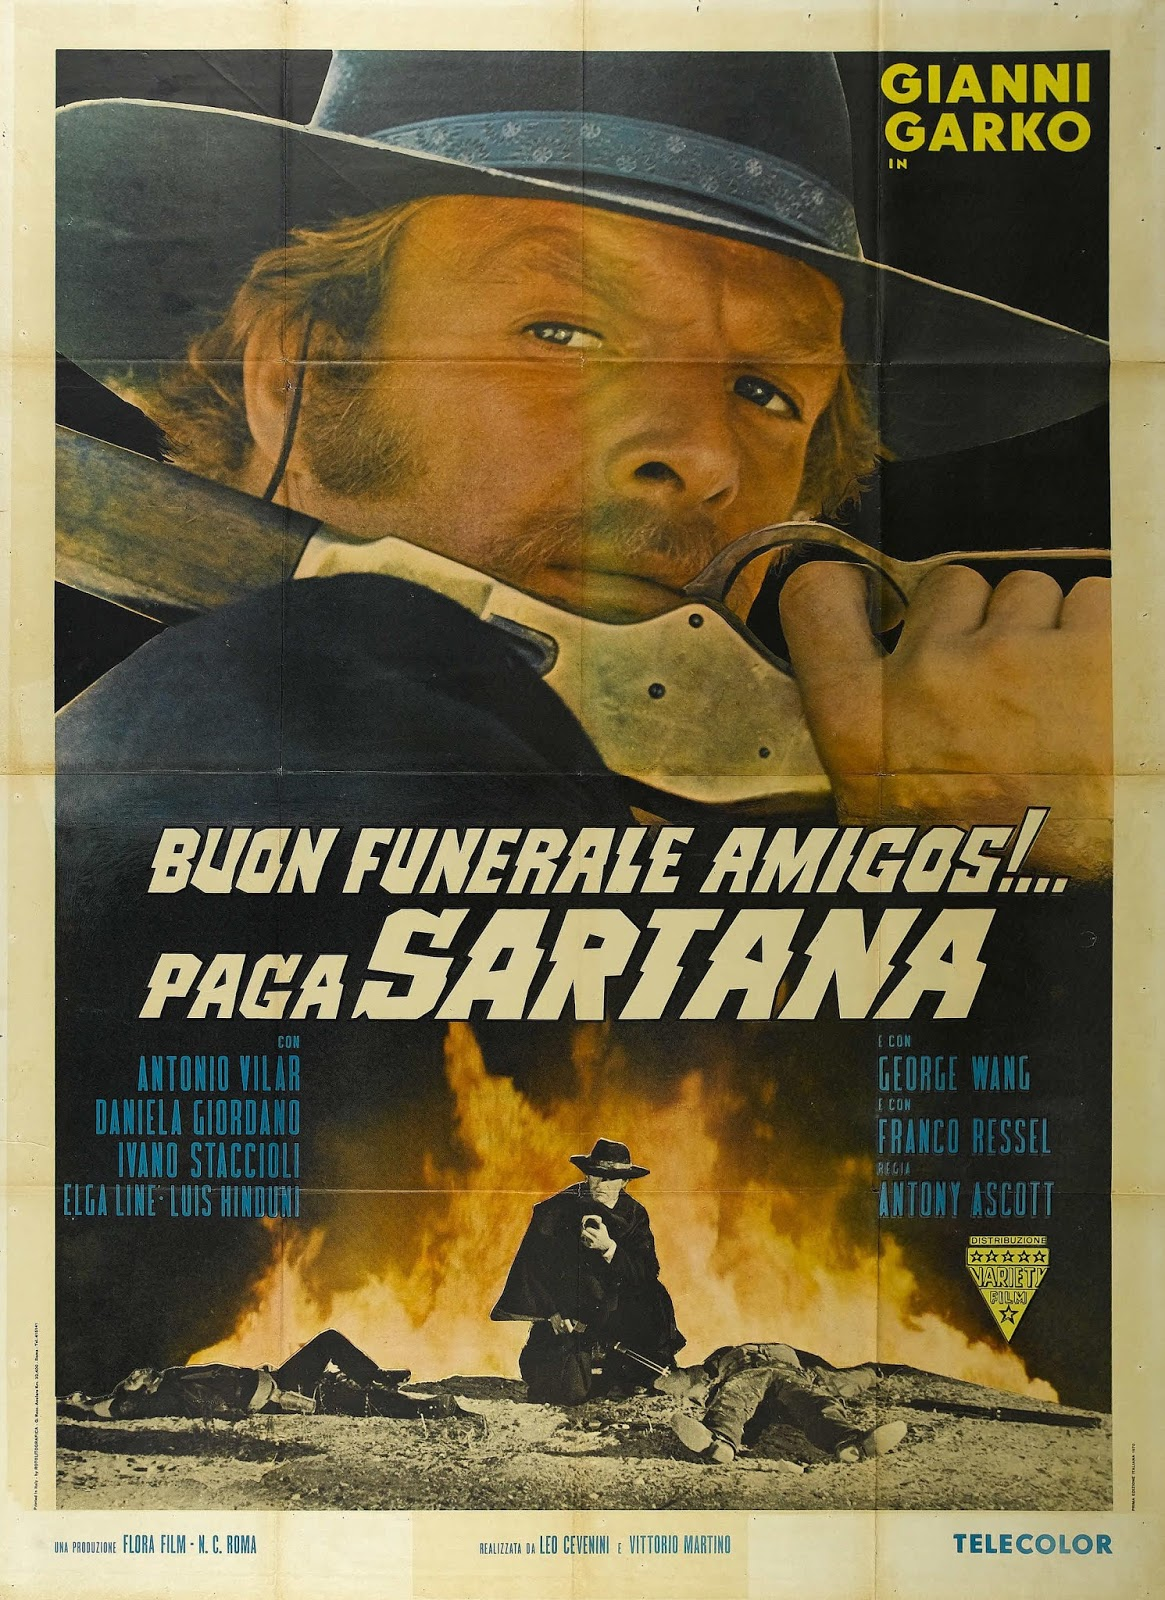 Have a Nice Funeral, My Friend, Sartana Will Pay